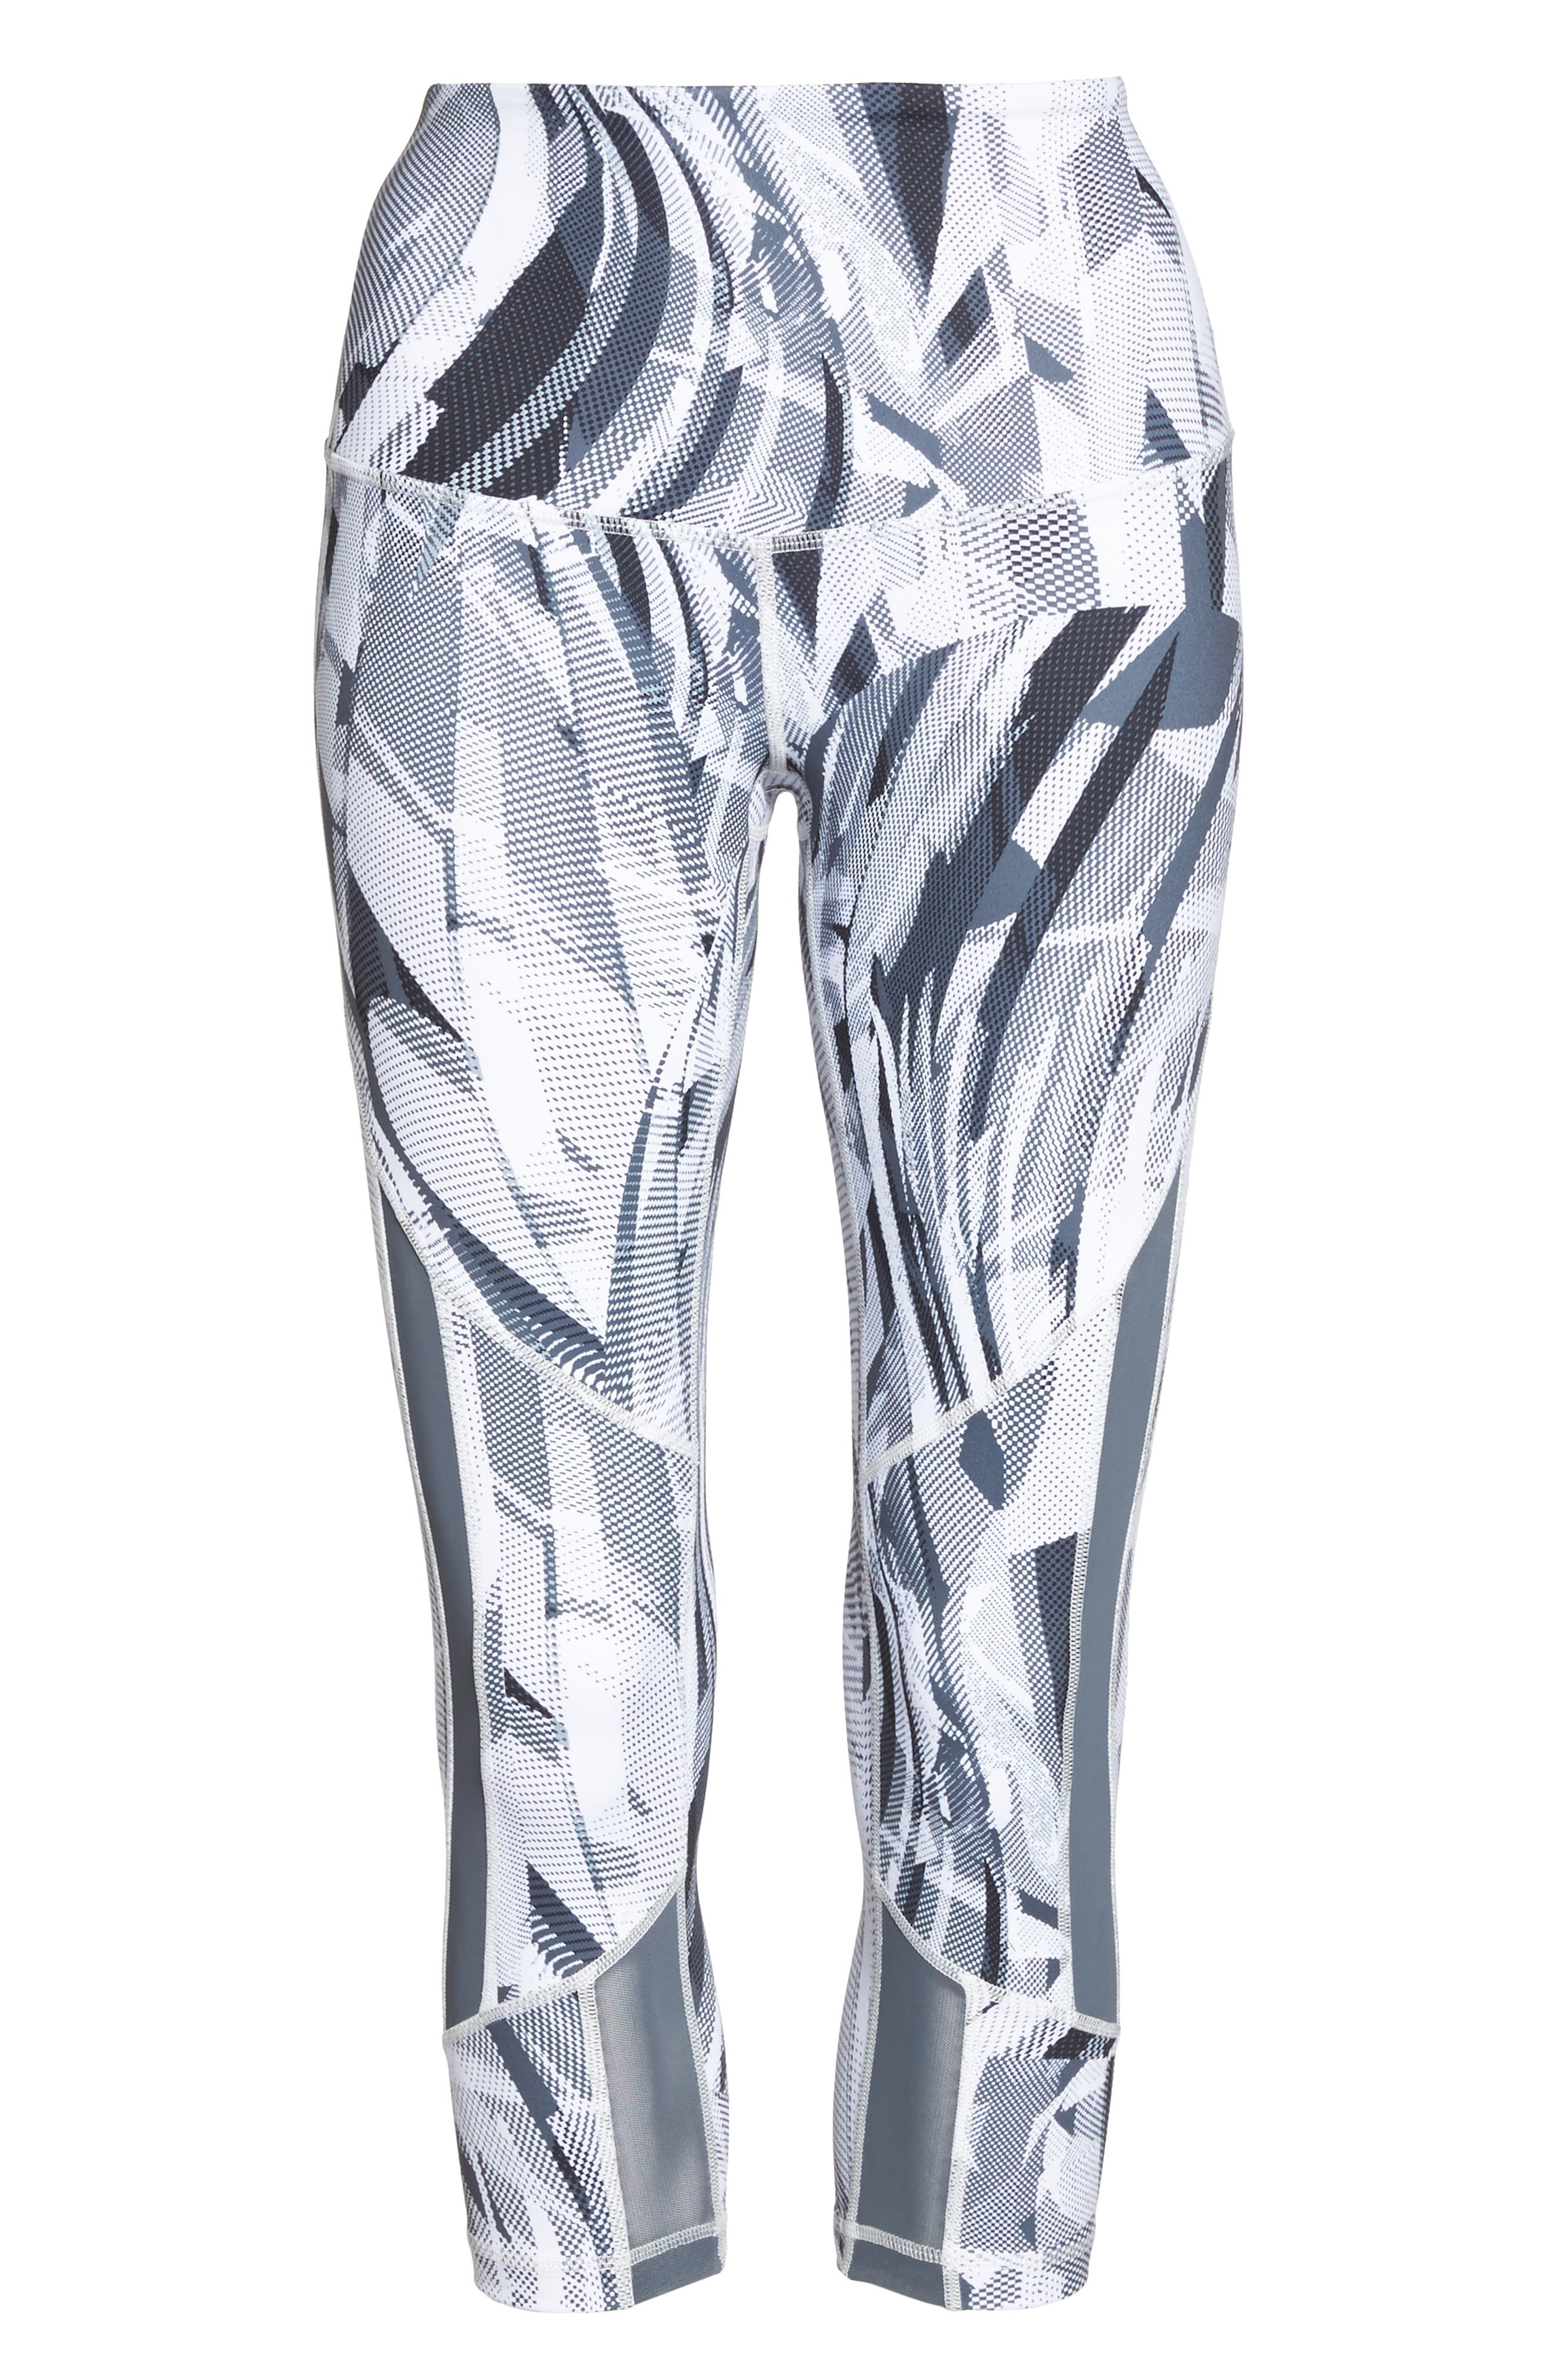 Sheer to There High Waist Crop Leggings,                             Alternate thumbnail 7, color,                             White Atmospheric Camo Print